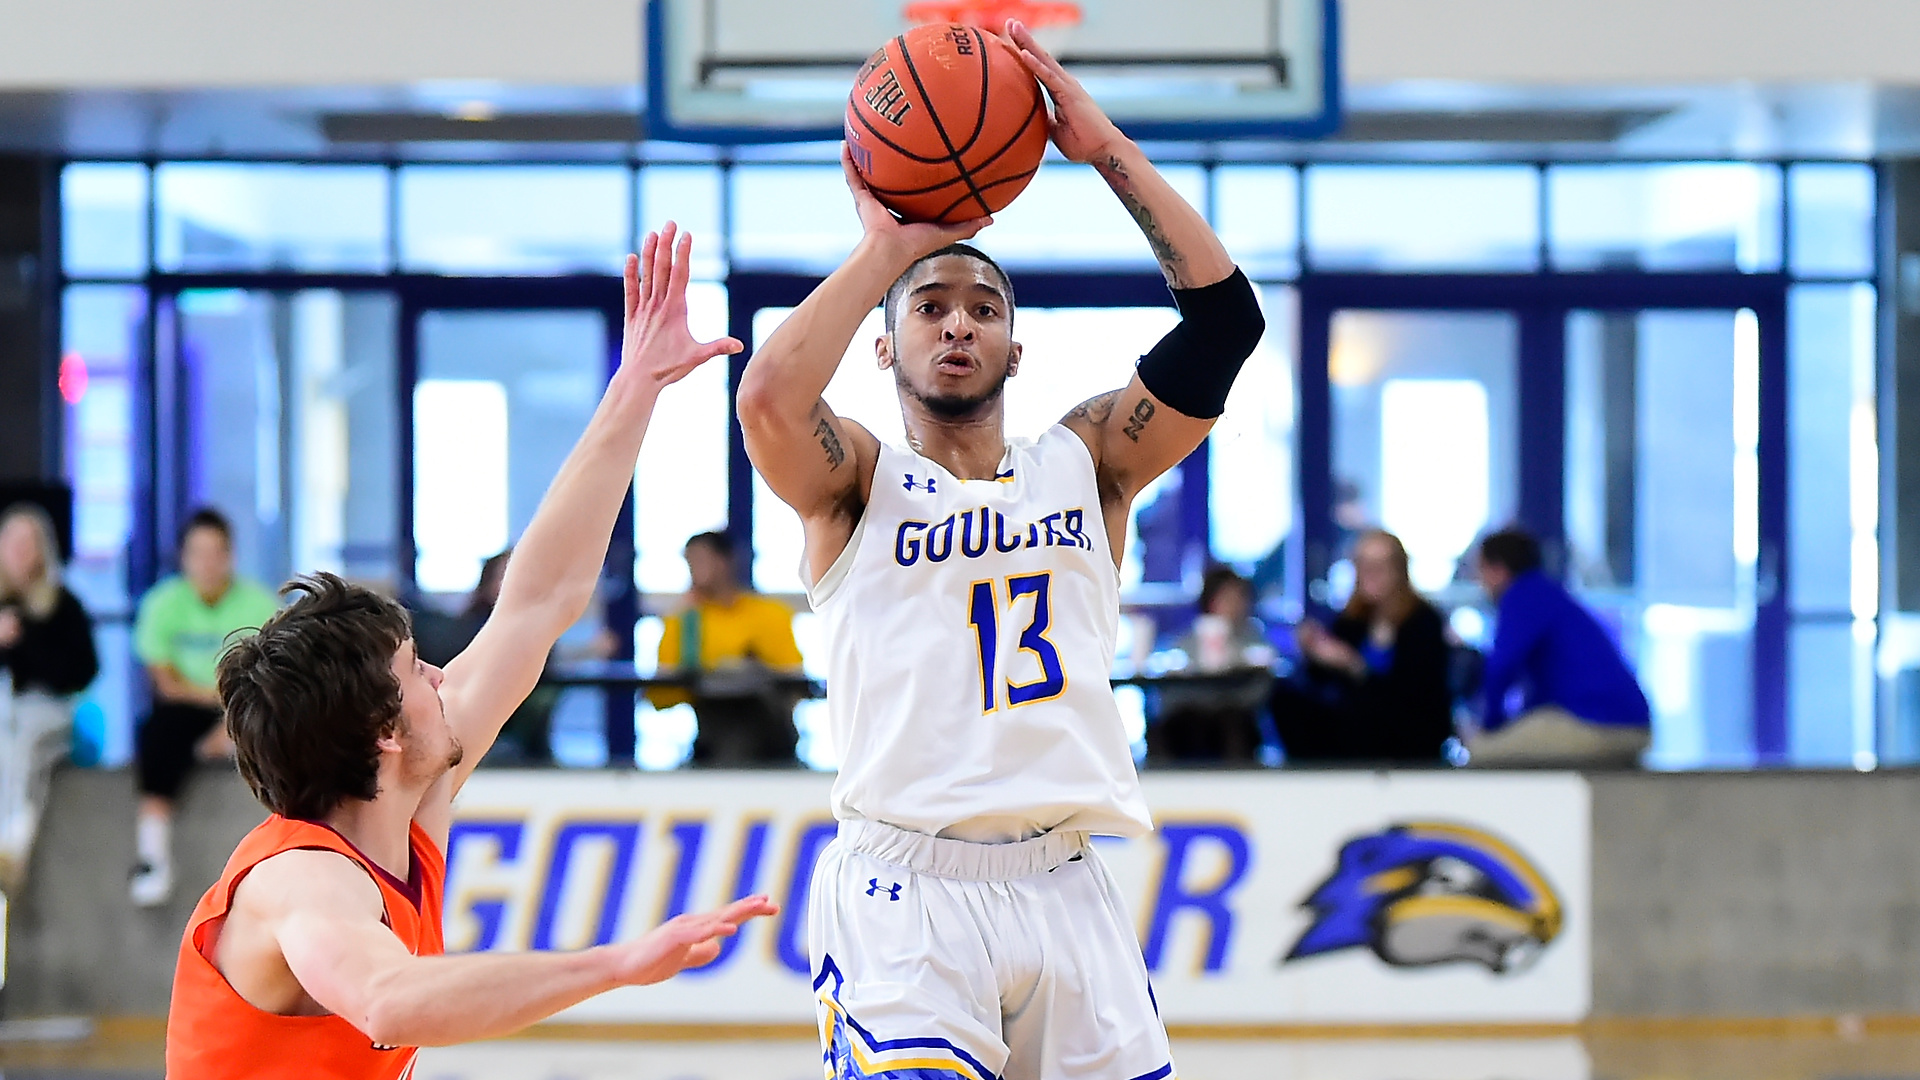 Well-Traveled Dwayne Morton Found A Home With Goucher Men's Basketball